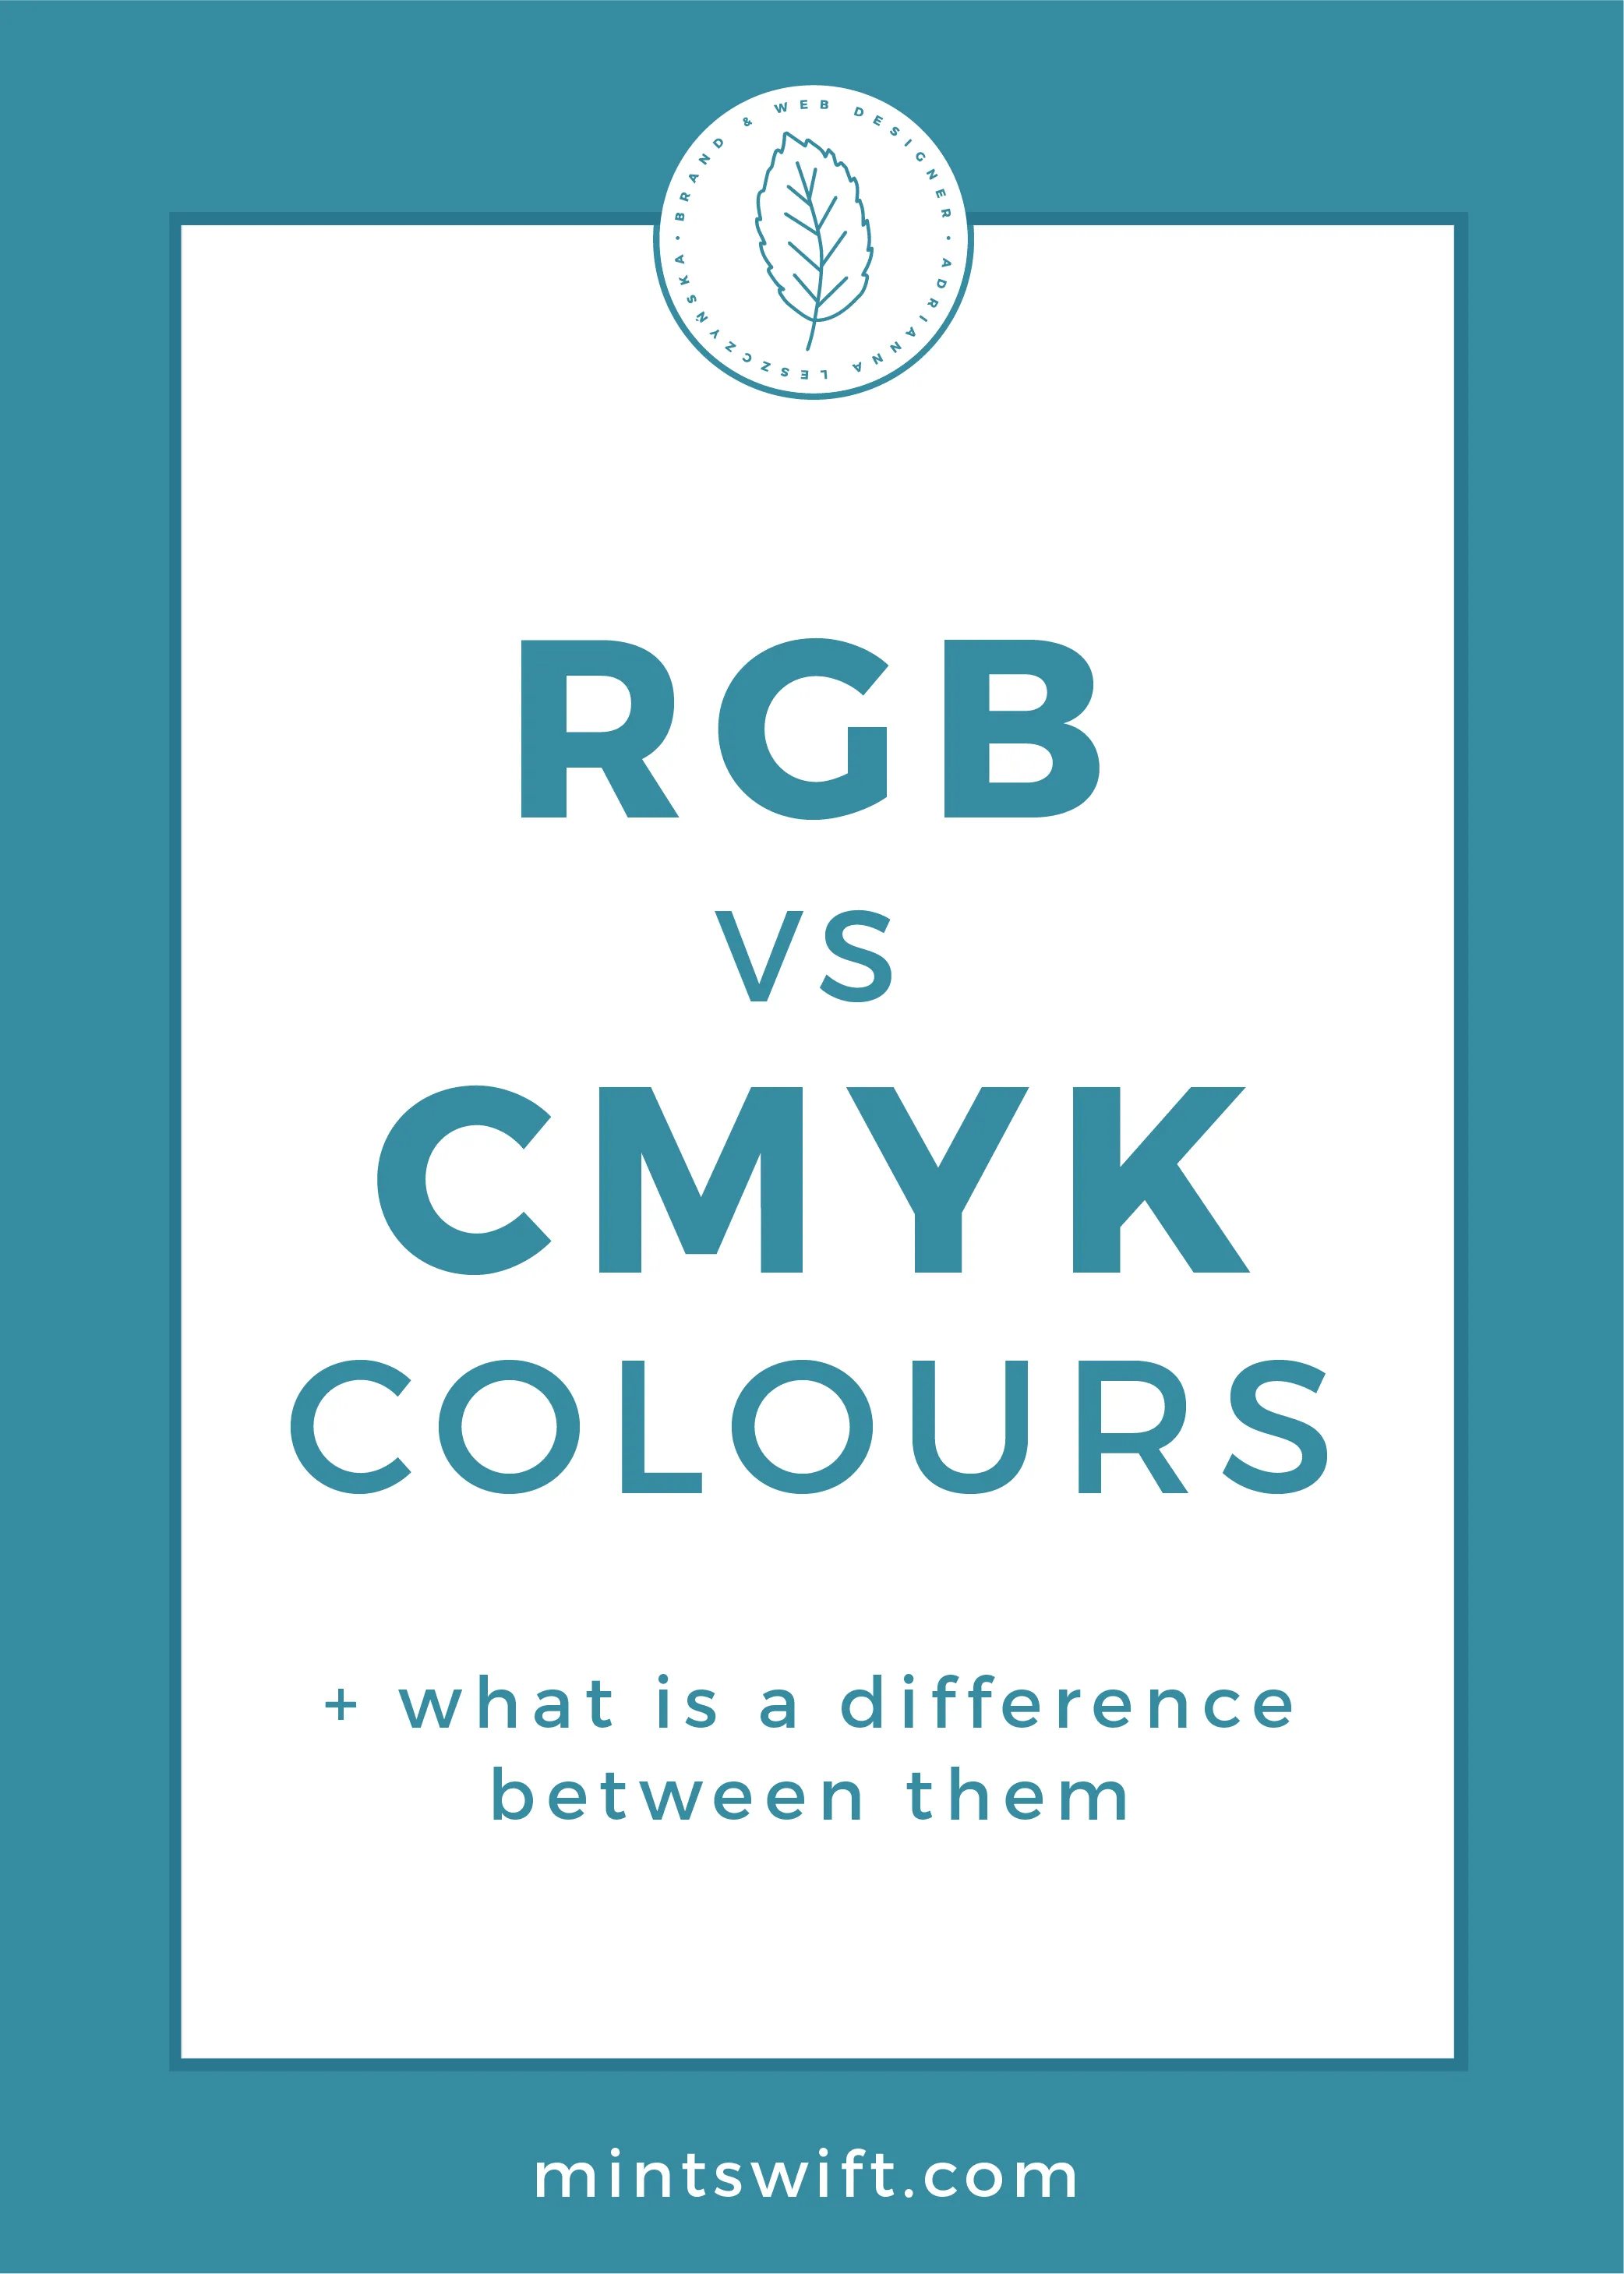 RGB vs CMYK Colours + What is a Difference Between Them by MintSwift